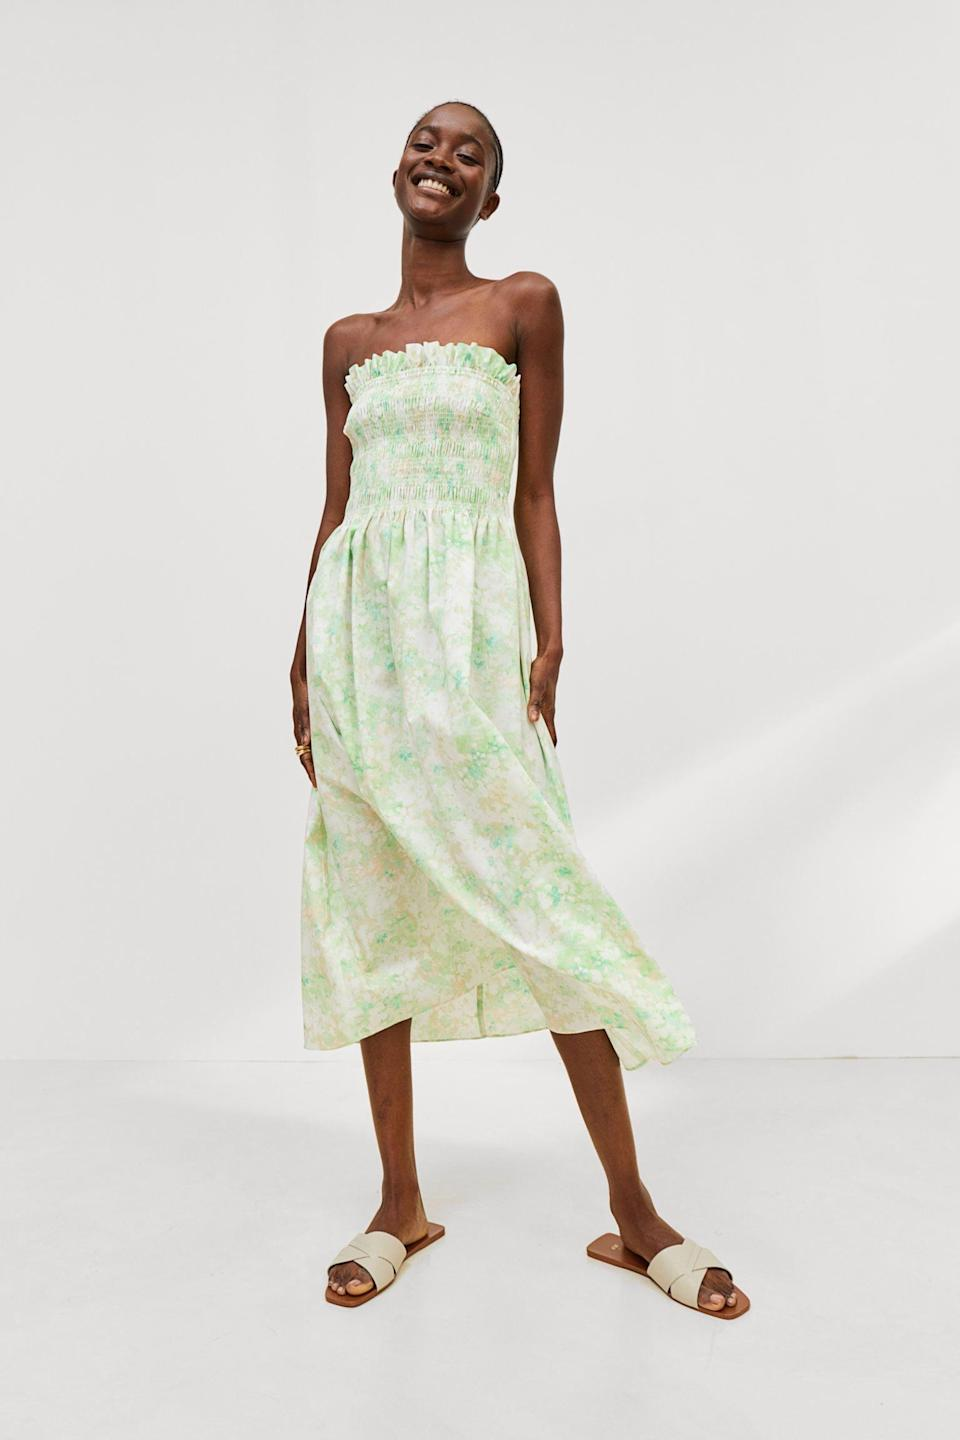 <p>This <span>Smocked-bodice Dress</span> ($18, originally $20) pairs well with spontaneous weekend brunch plans. Finish the look with some slides and a straw hat if you feel like being extra.</p>